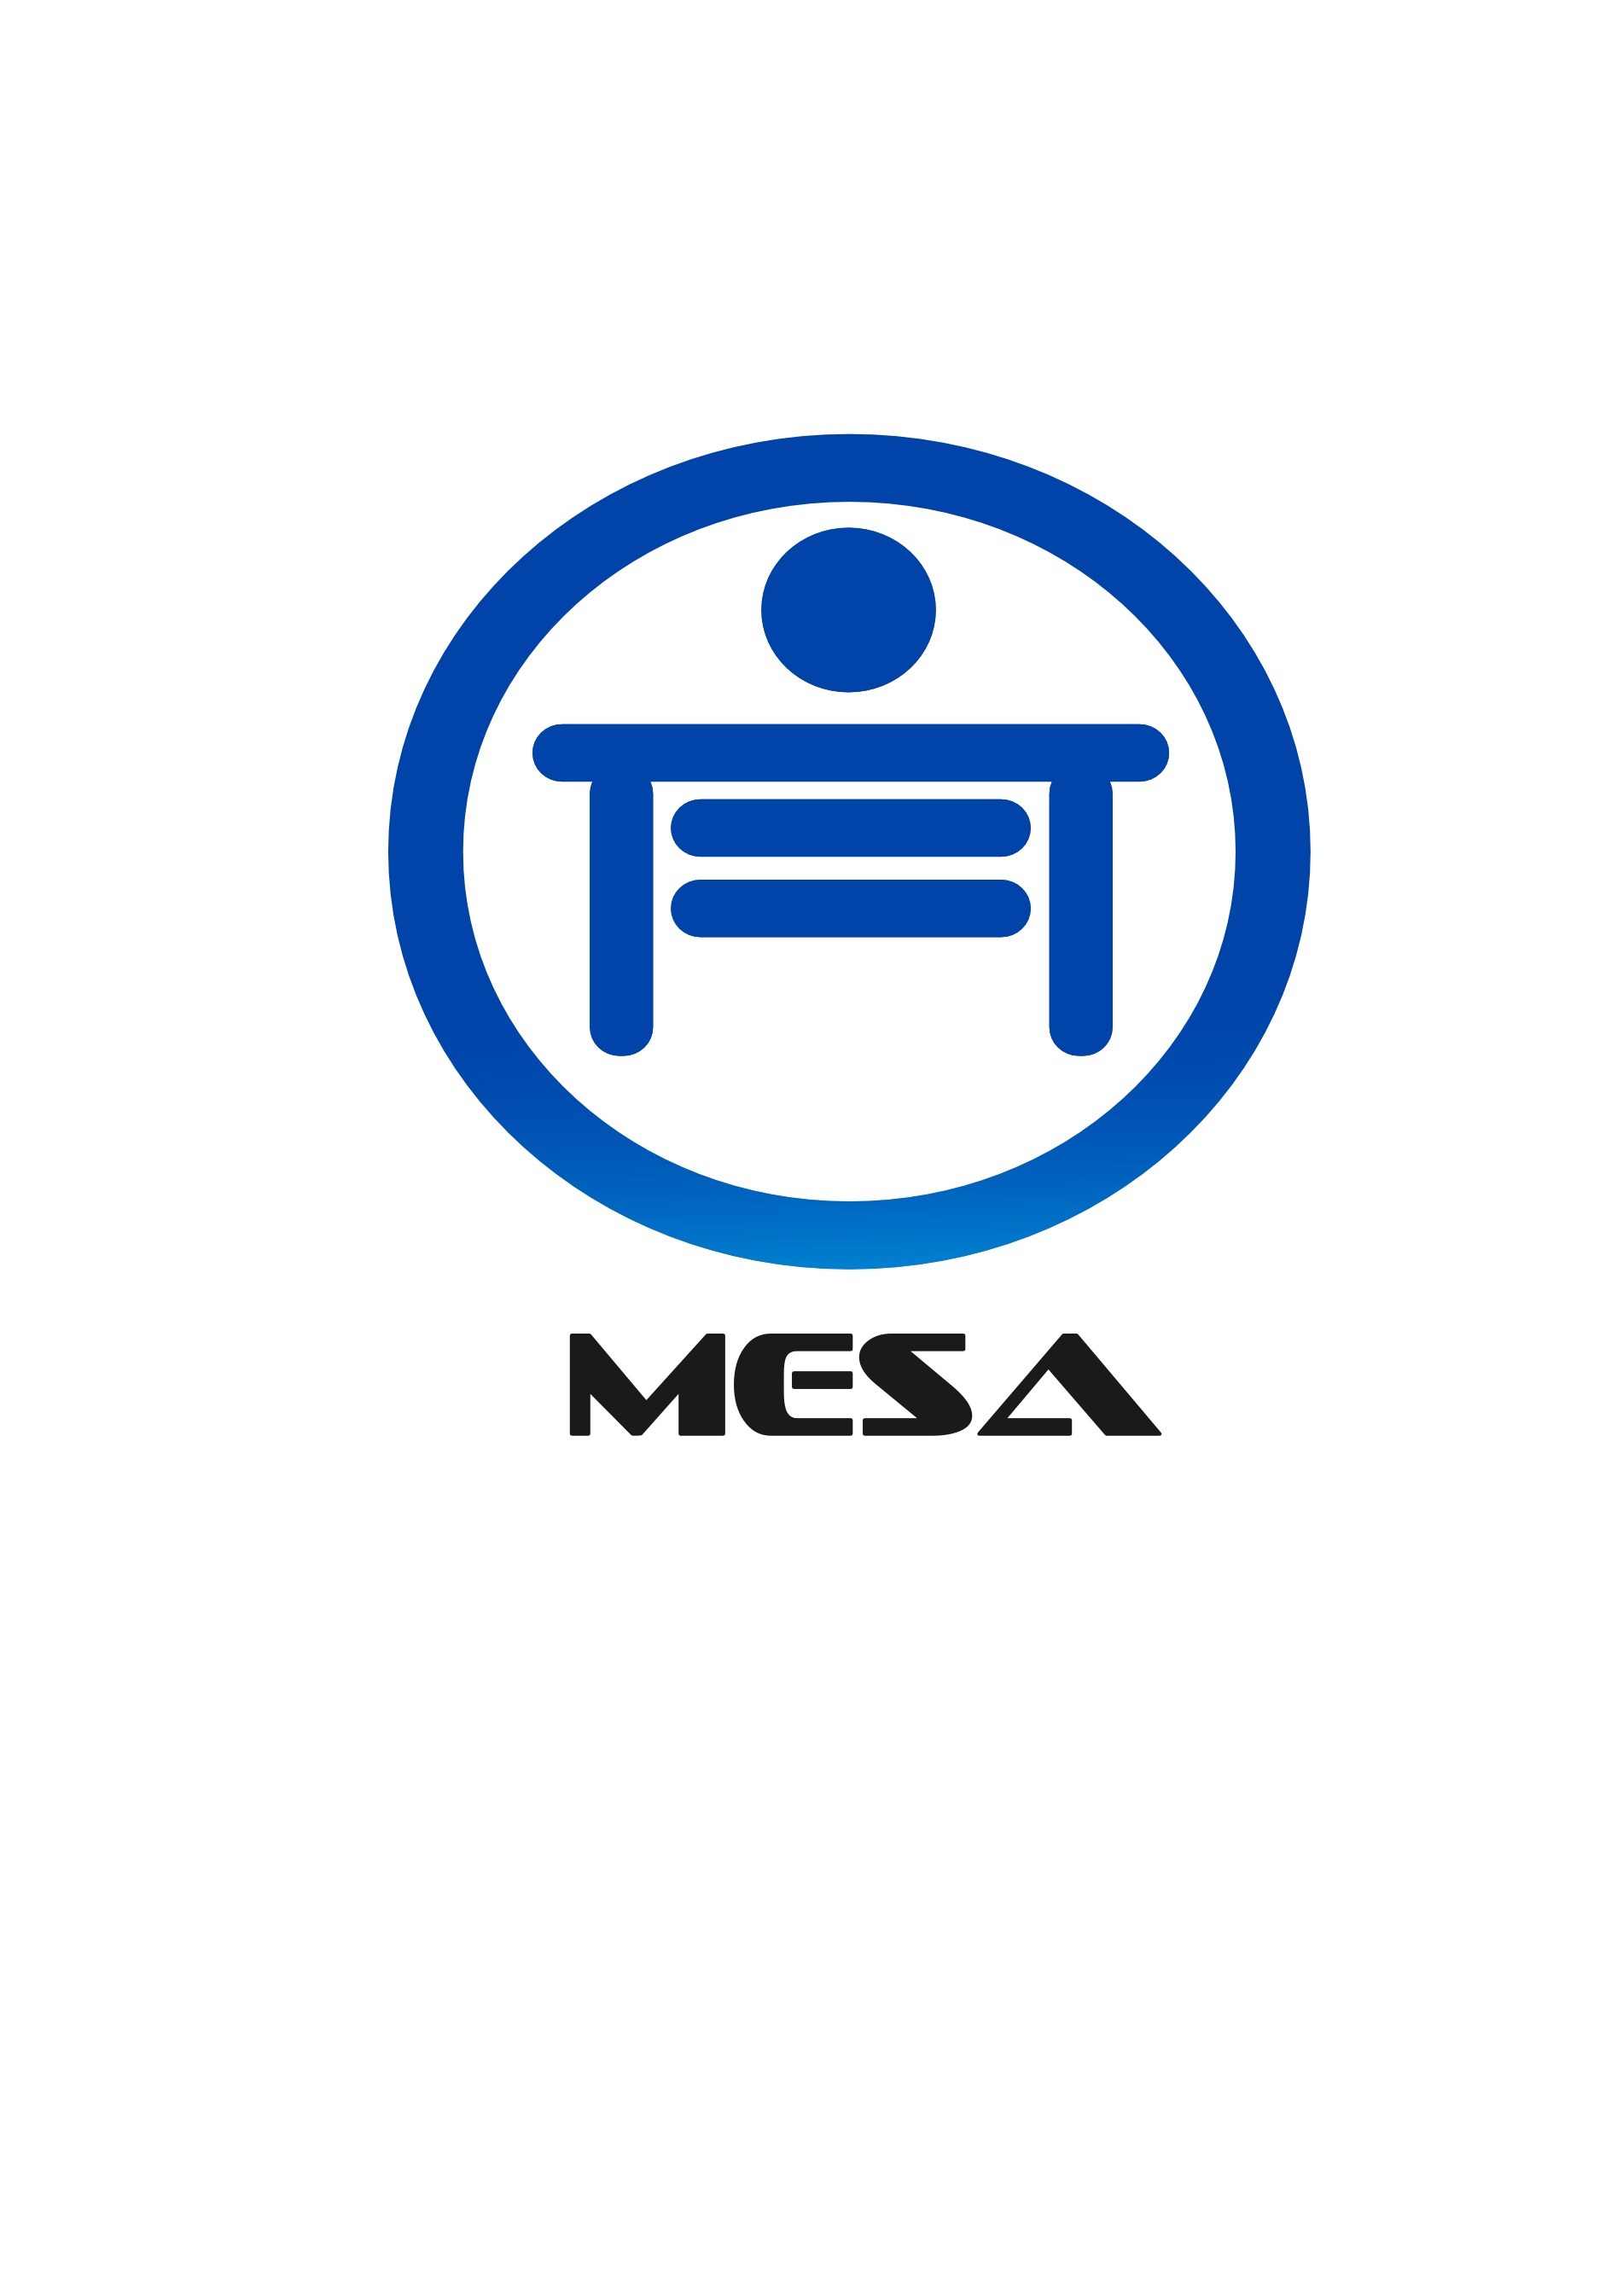 Logo Design by whoosef - Entry No. 184 in the Logo Design Contest Logo Design for Mesa.